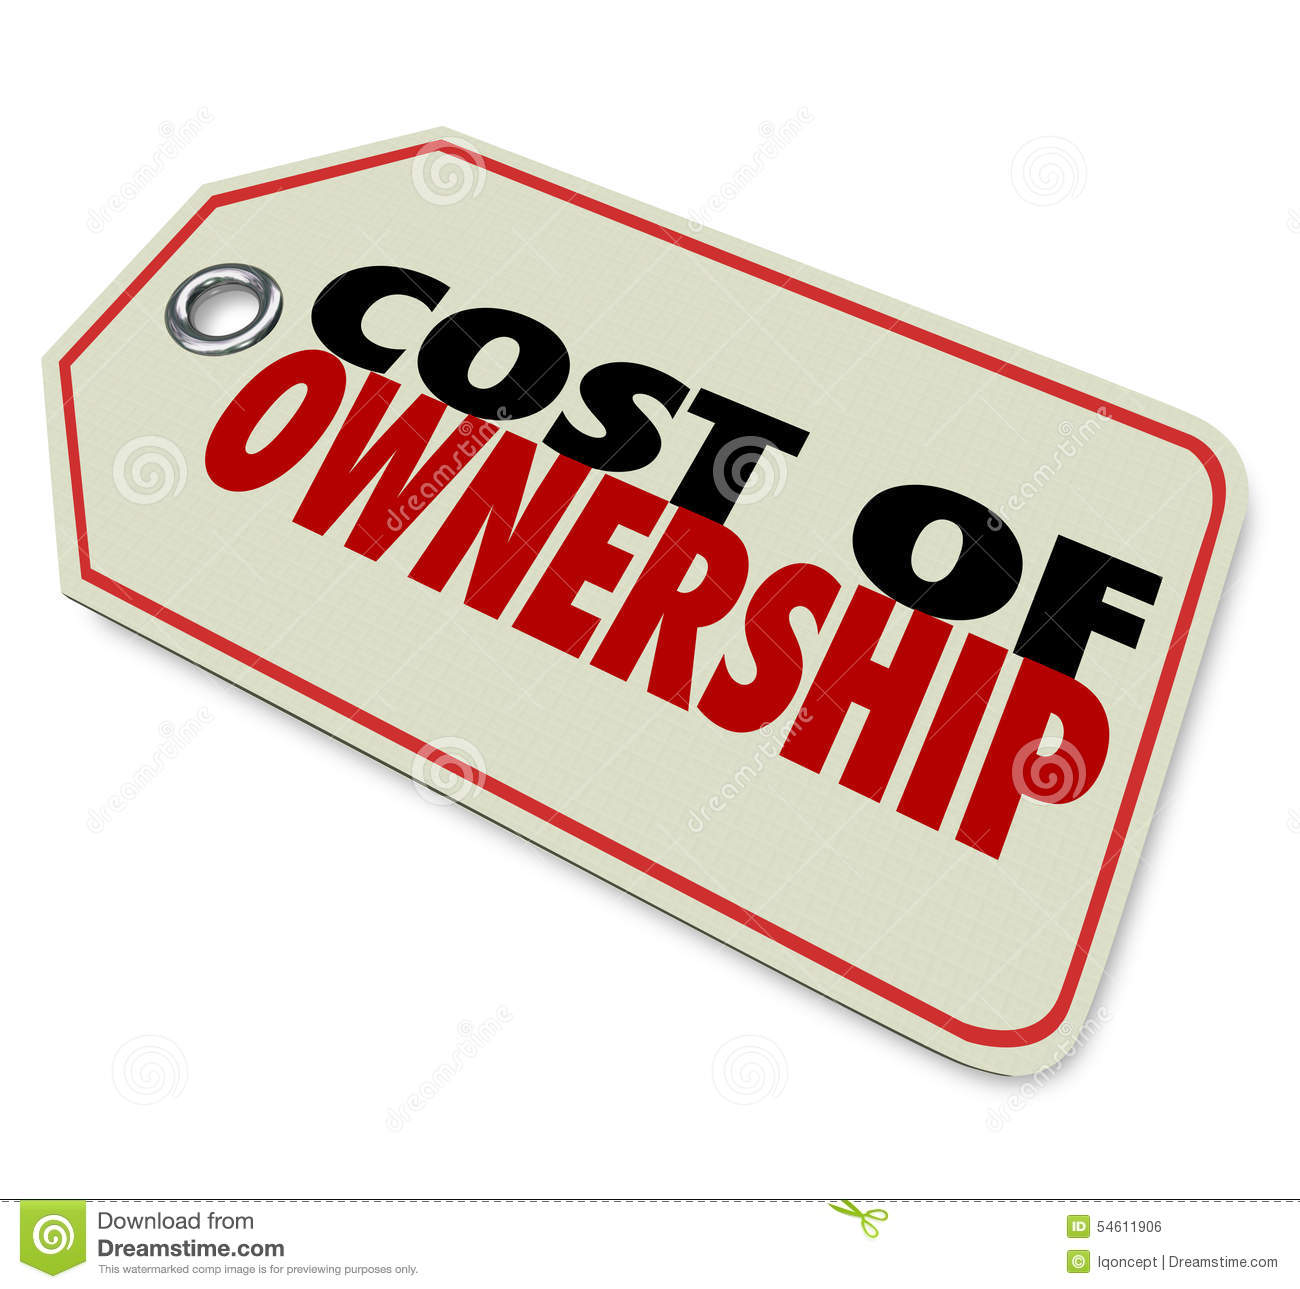 Cost Of Ownership Price Tag Good Value Investment ROI Stock.